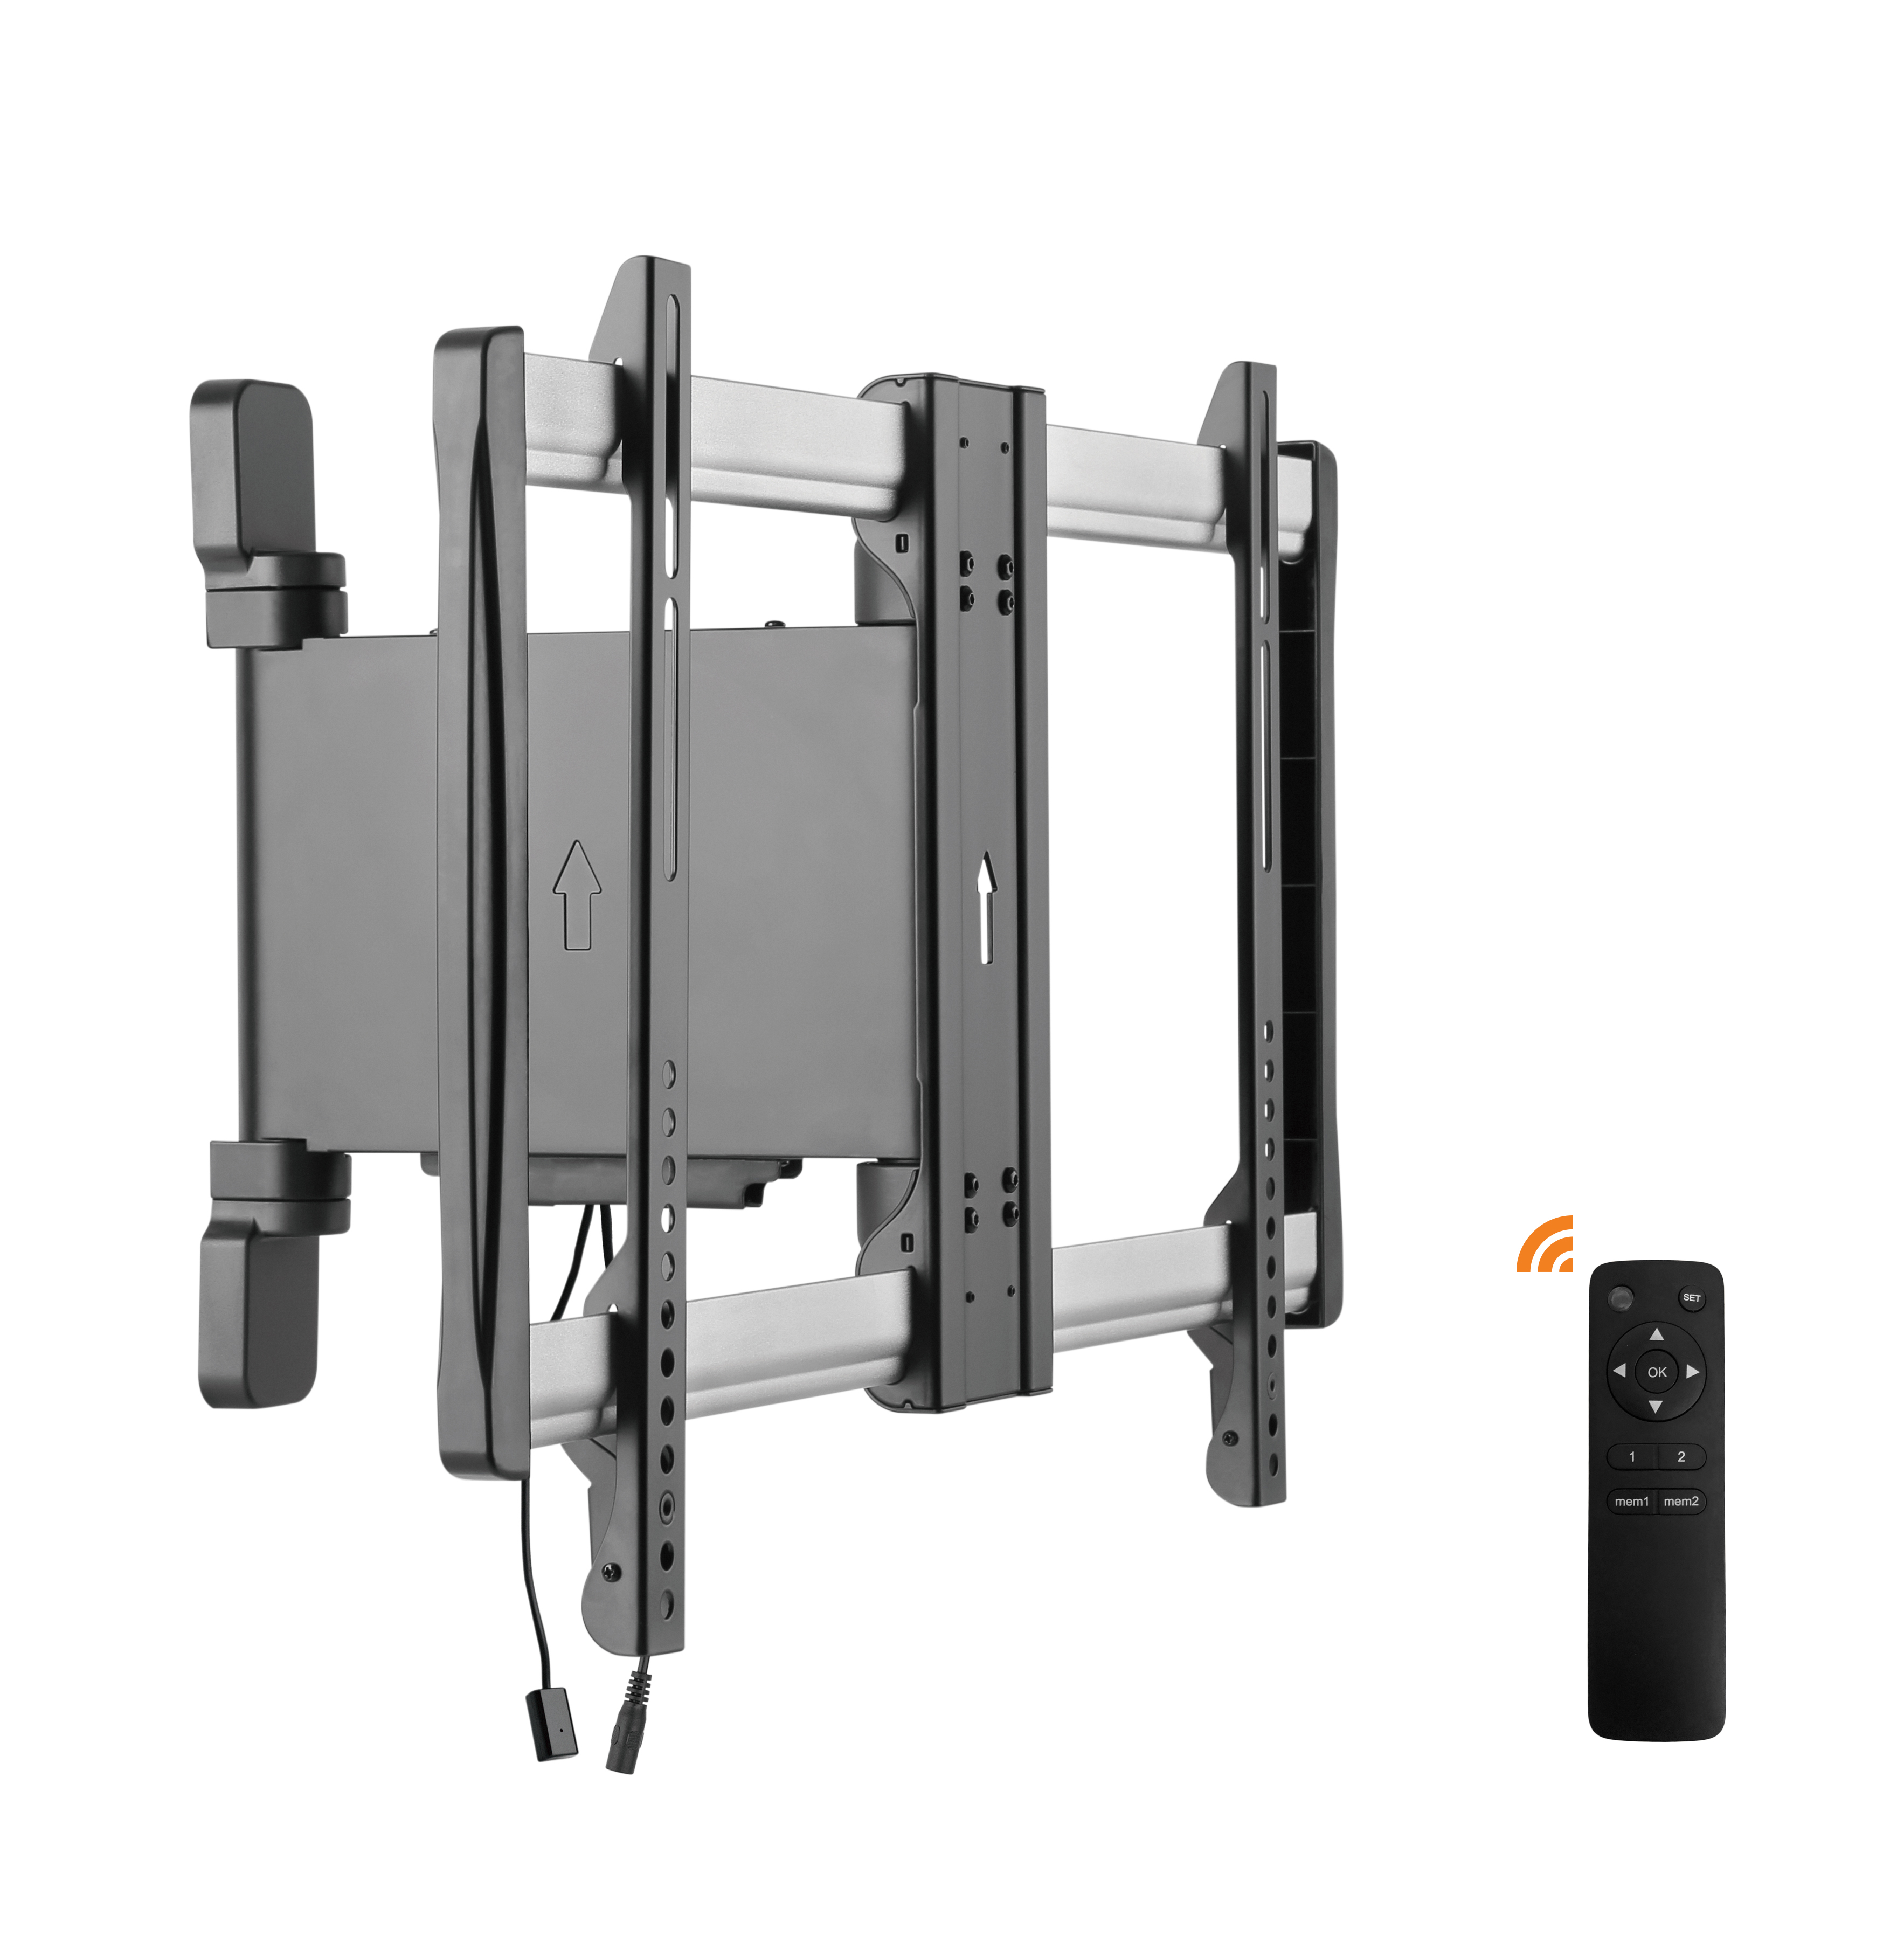 remote control motorized wall mount 32 60 retrotouch designer light switches plug sockets. Black Bedroom Furniture Sets. Home Design Ideas